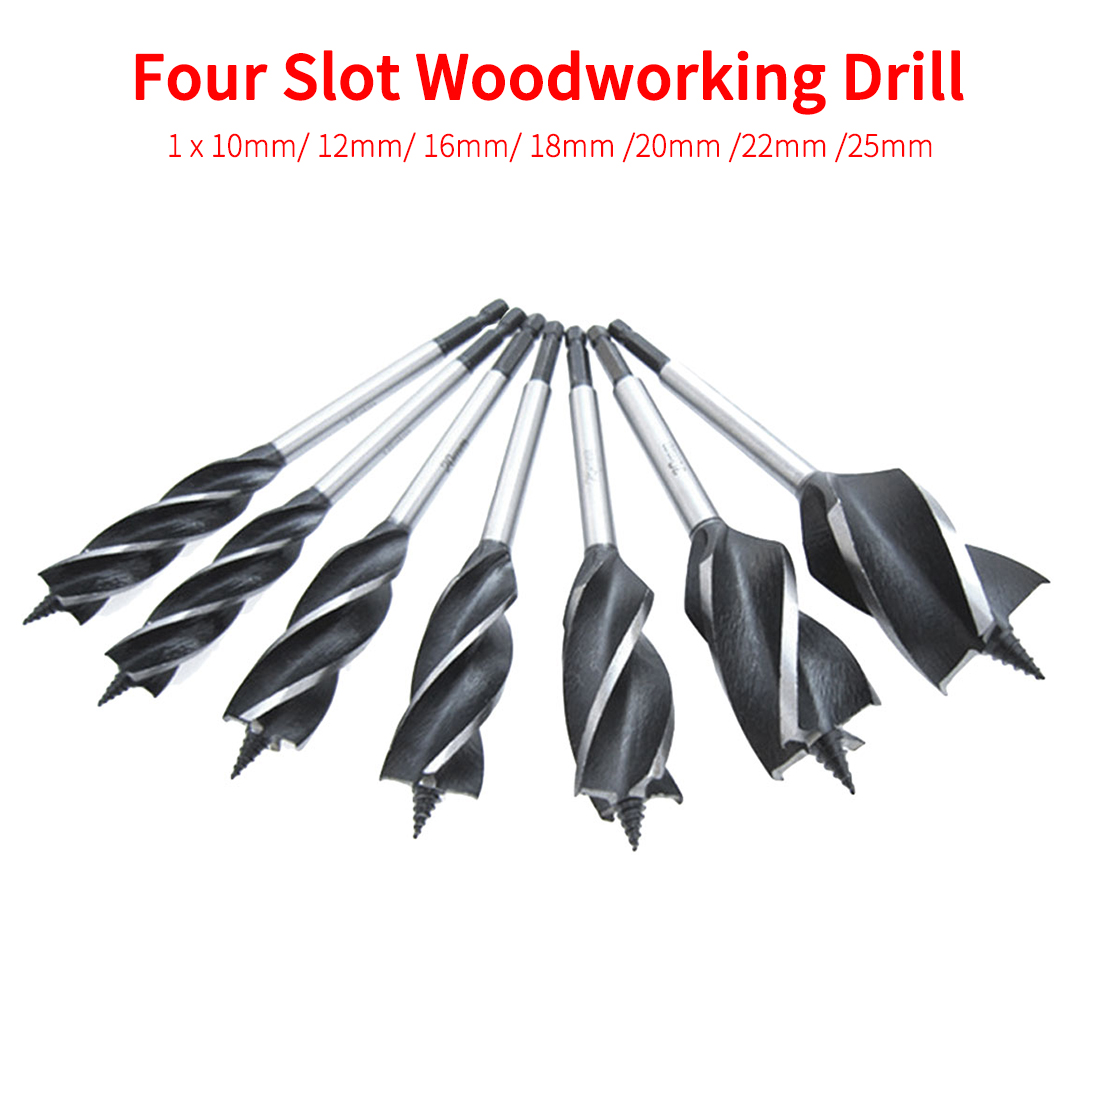 Twist Drill Bit Set Wood Fast Cut Auger Carpenter Joiner Tool Drill Bit For Drawer/ Door Lock/ Woodworking Hex Shank 10mm-25mm